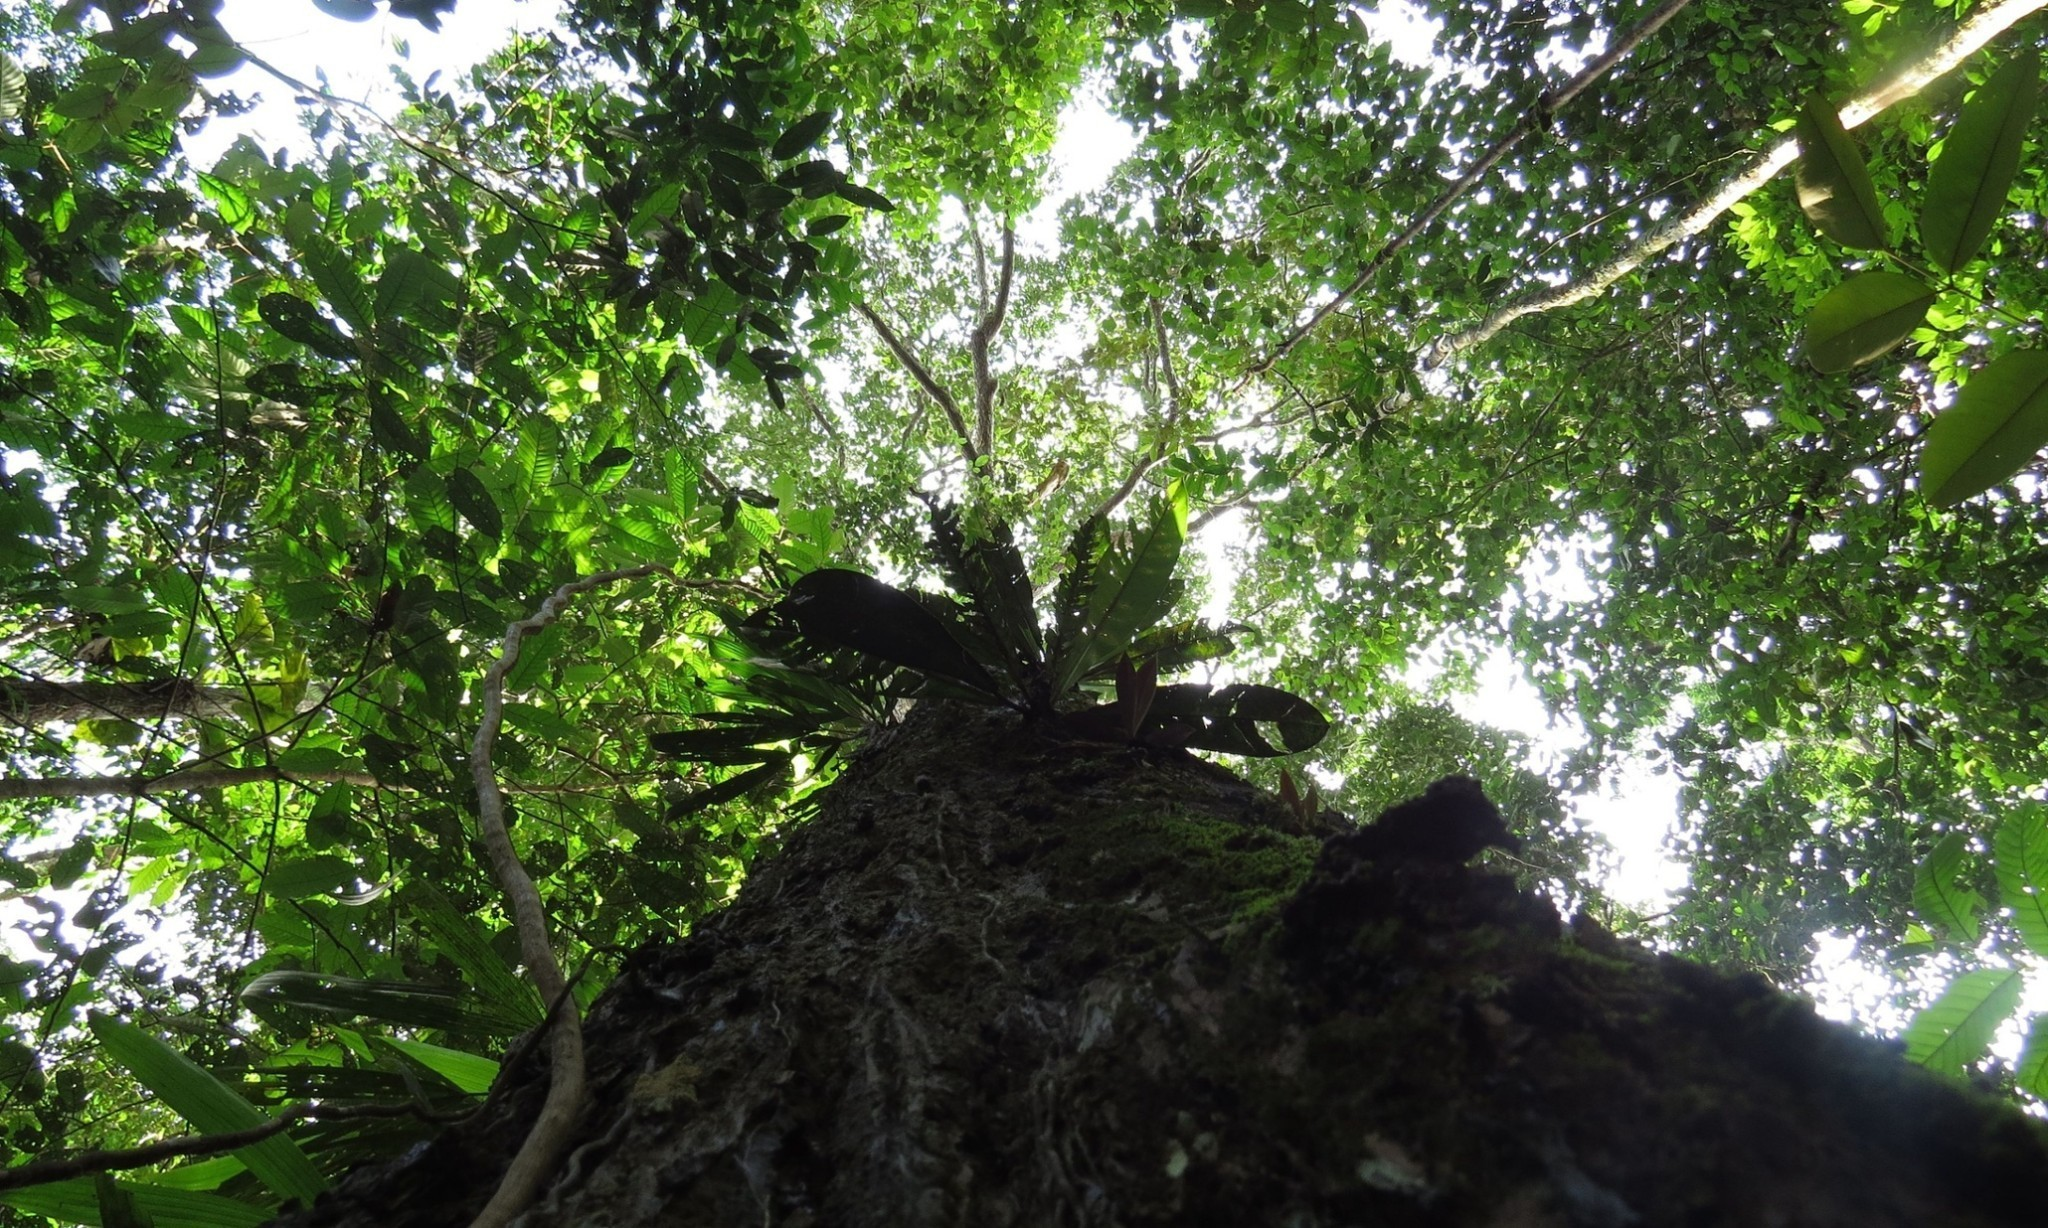 Amazon's trees removed nearly a third less carbon in last decade – study